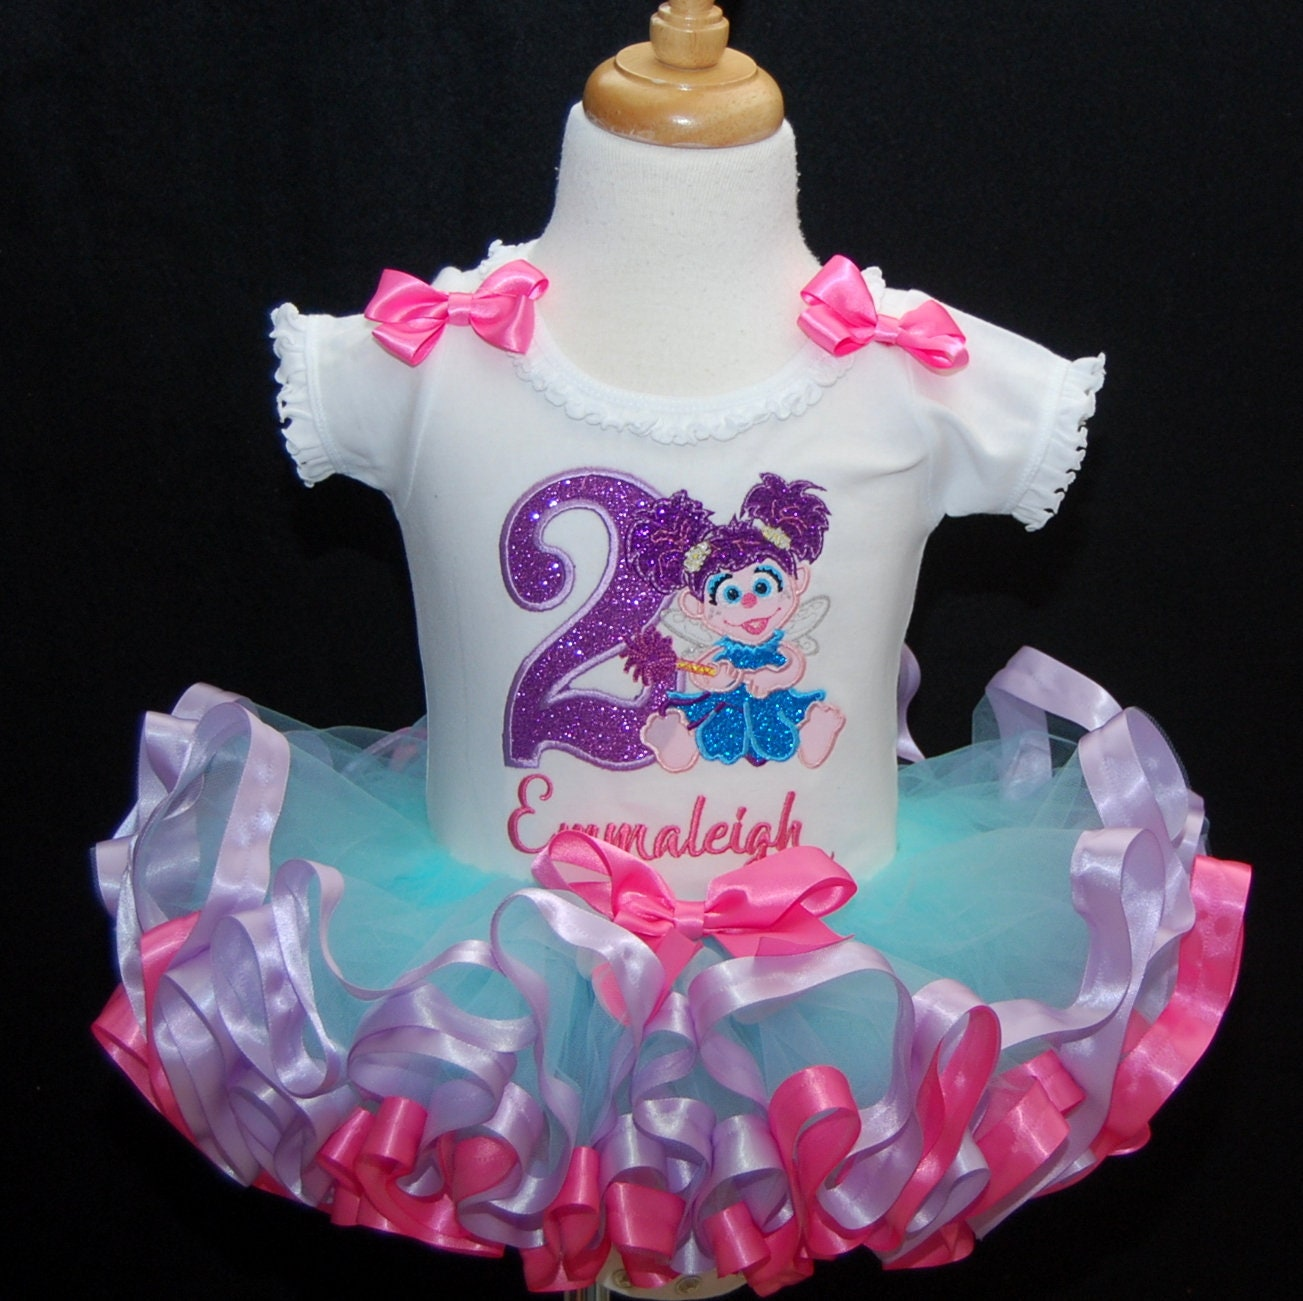 Sesame Street birthday dress featuring Abby Cadabby fully and fluffy ribbon trimmed tutu outfit for your babys 2nd birthday. Pesonalized